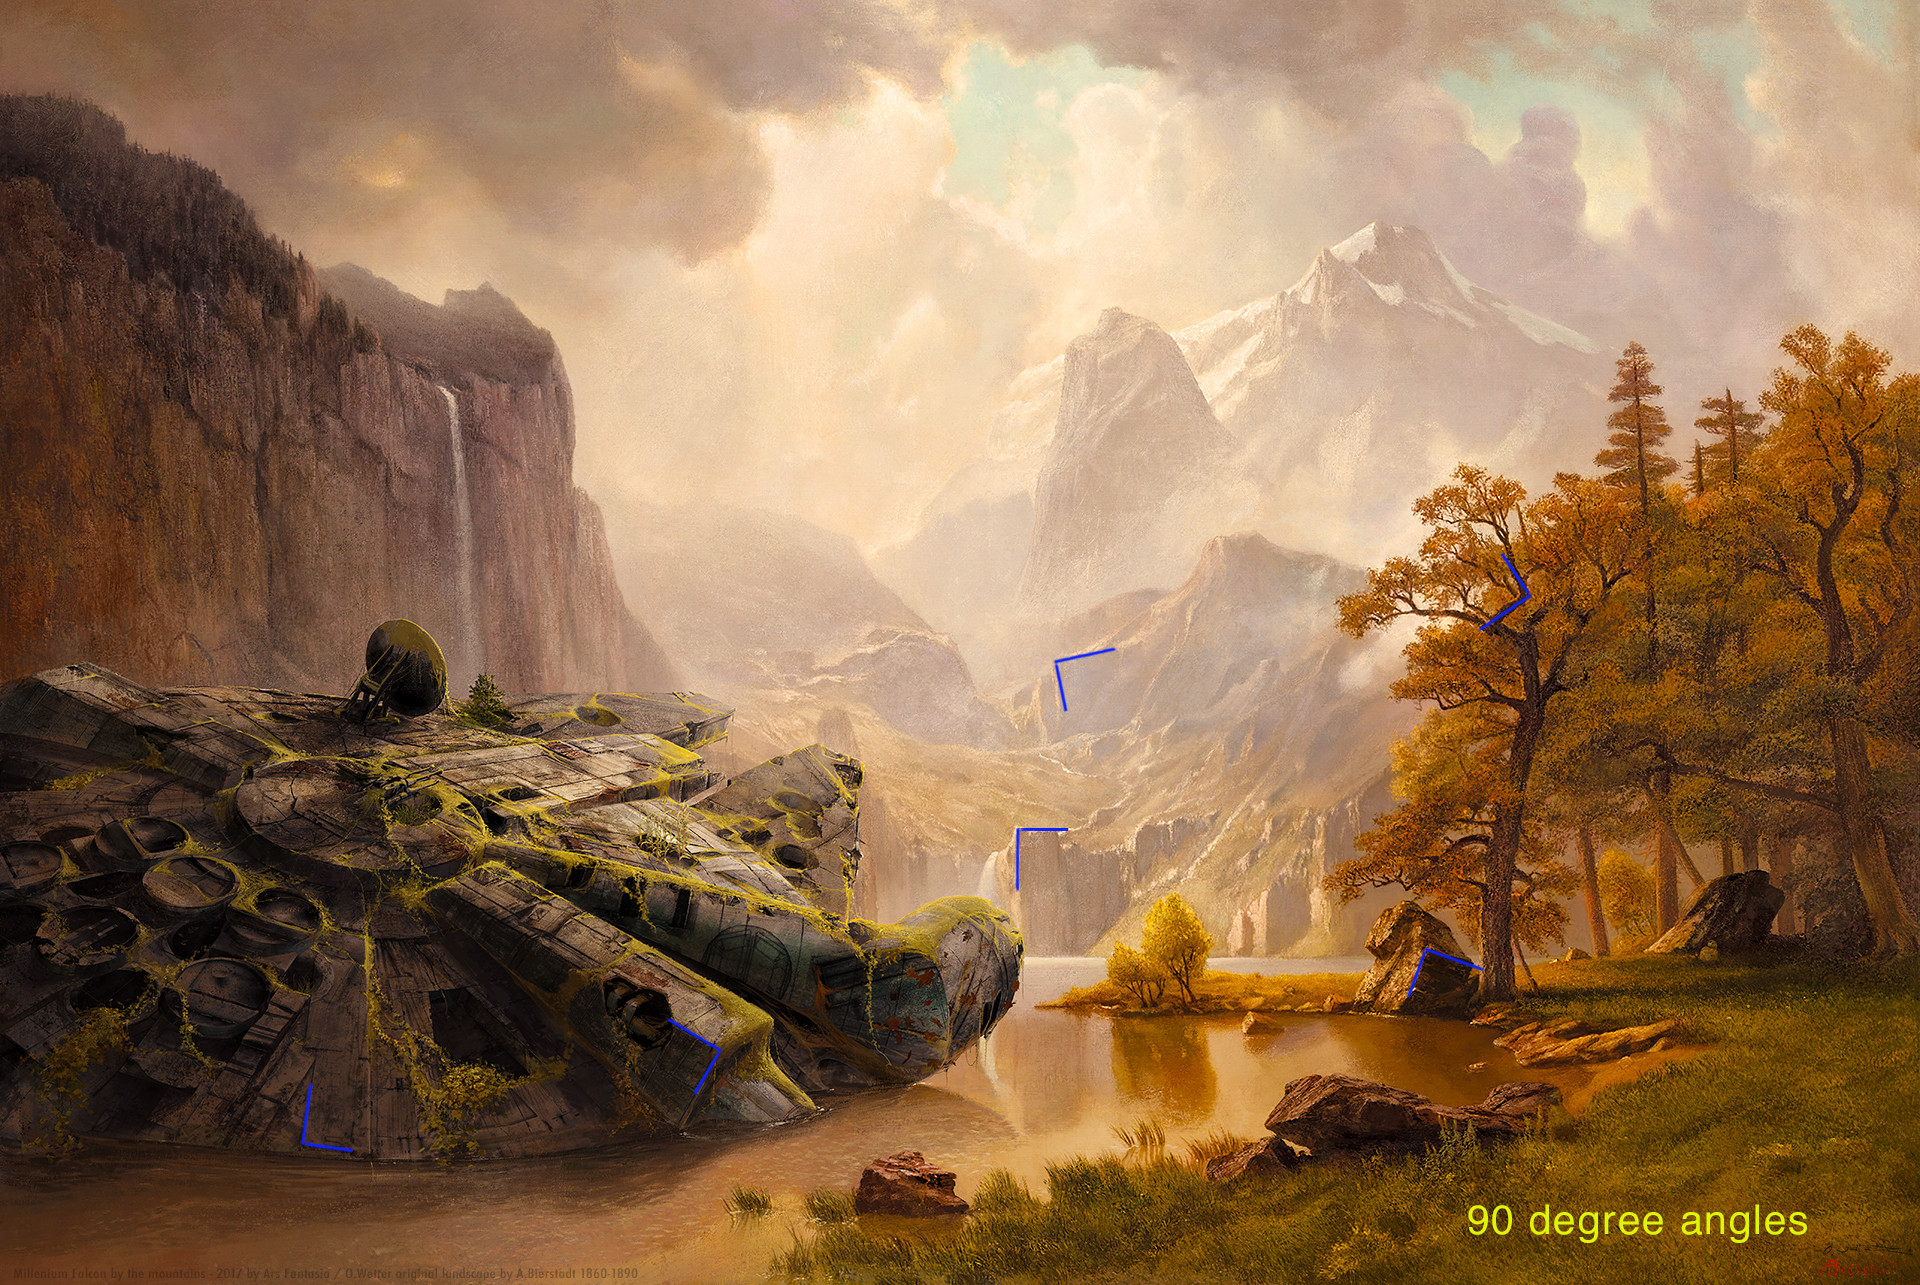 Oliver wetter composition findings 90 degree 1920x1200px watermarked web abandoned millenium falcon at sierra nevada